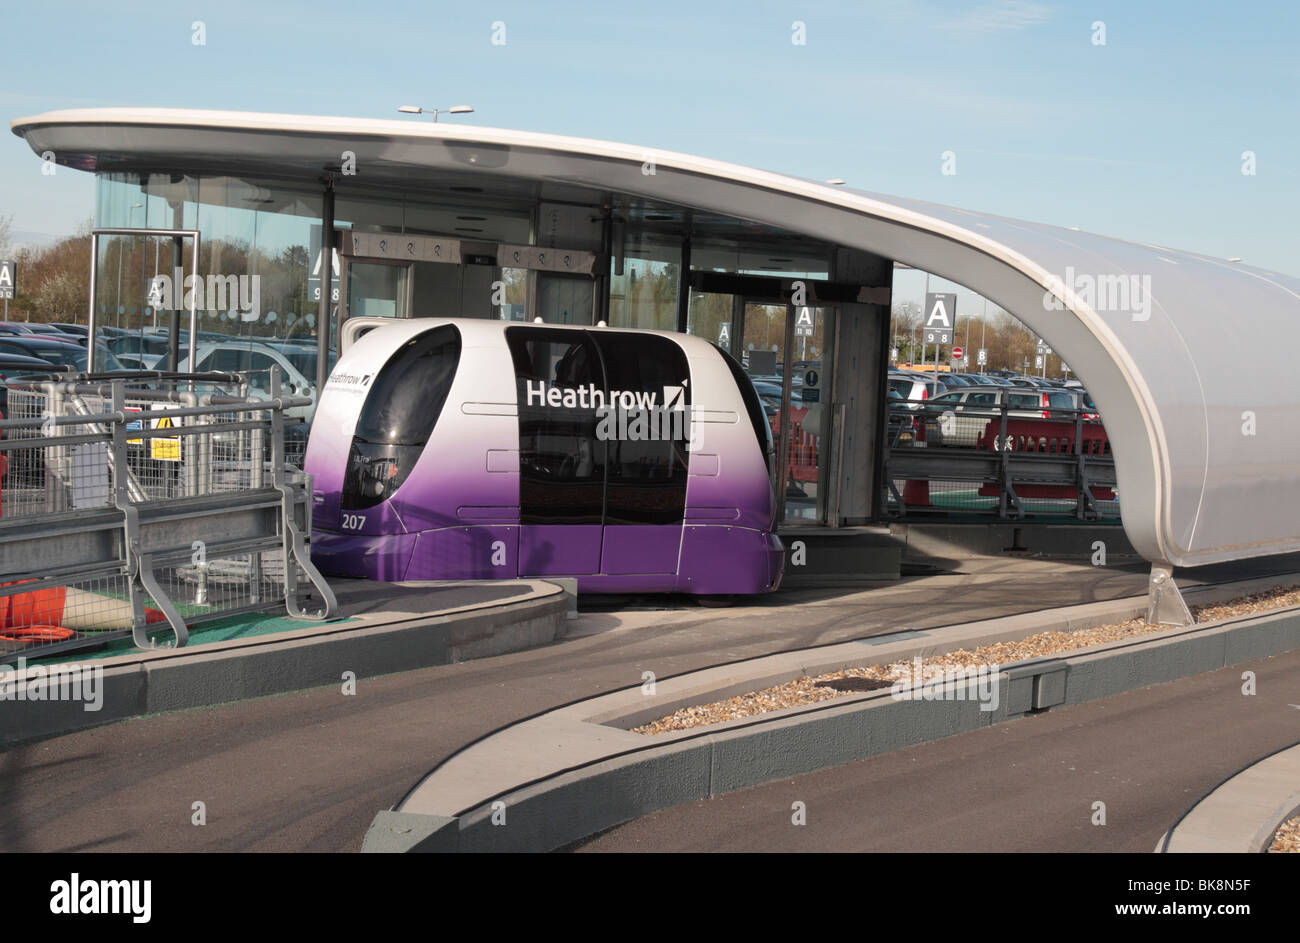 A Personal Rapid Transport (PRT) pod waiting at a car park station at Heathrow Airport, London, UK. Apr 2010 - Stock Image